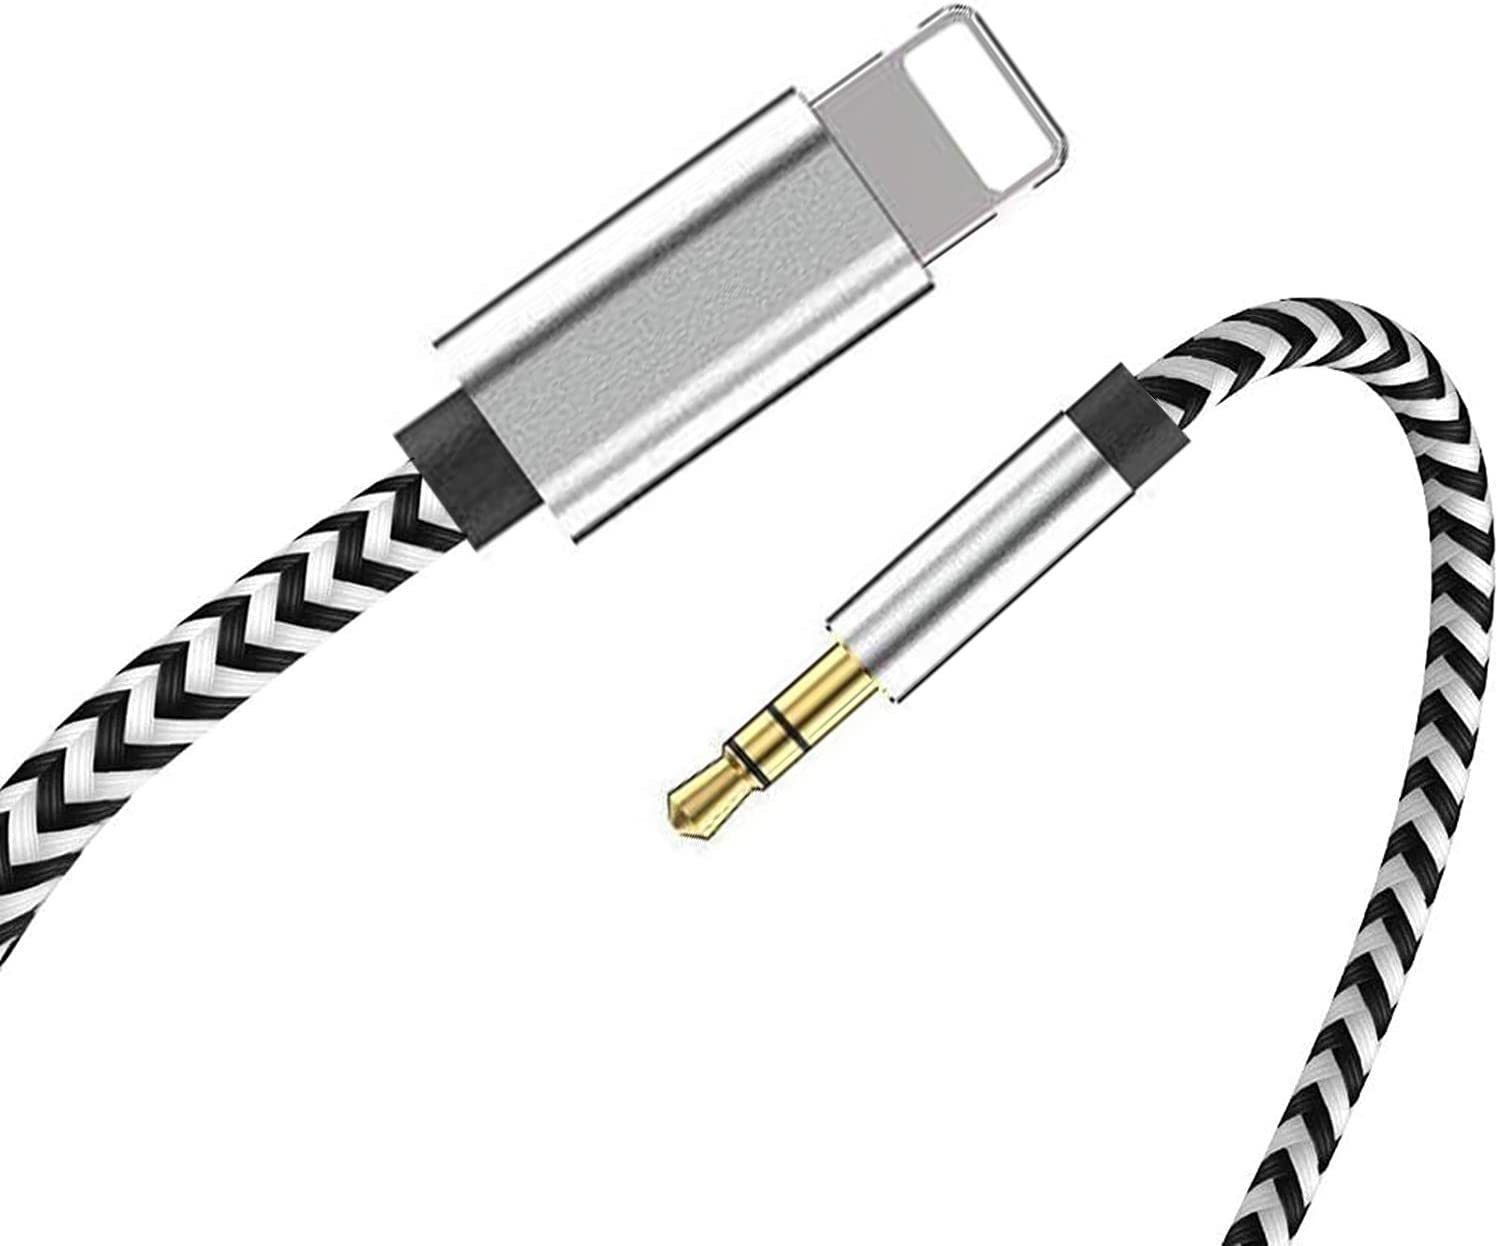 [Apple MFi Certified] iPhone AUX Cord for Car,Lightning to 3.5mm AUX Audio Nylon Braided Cable Compatible with iPhone 11/XS/XR/X 8 7,iPad,iPod to Speaker,Car/Home Stereo,Headphone (Silver)